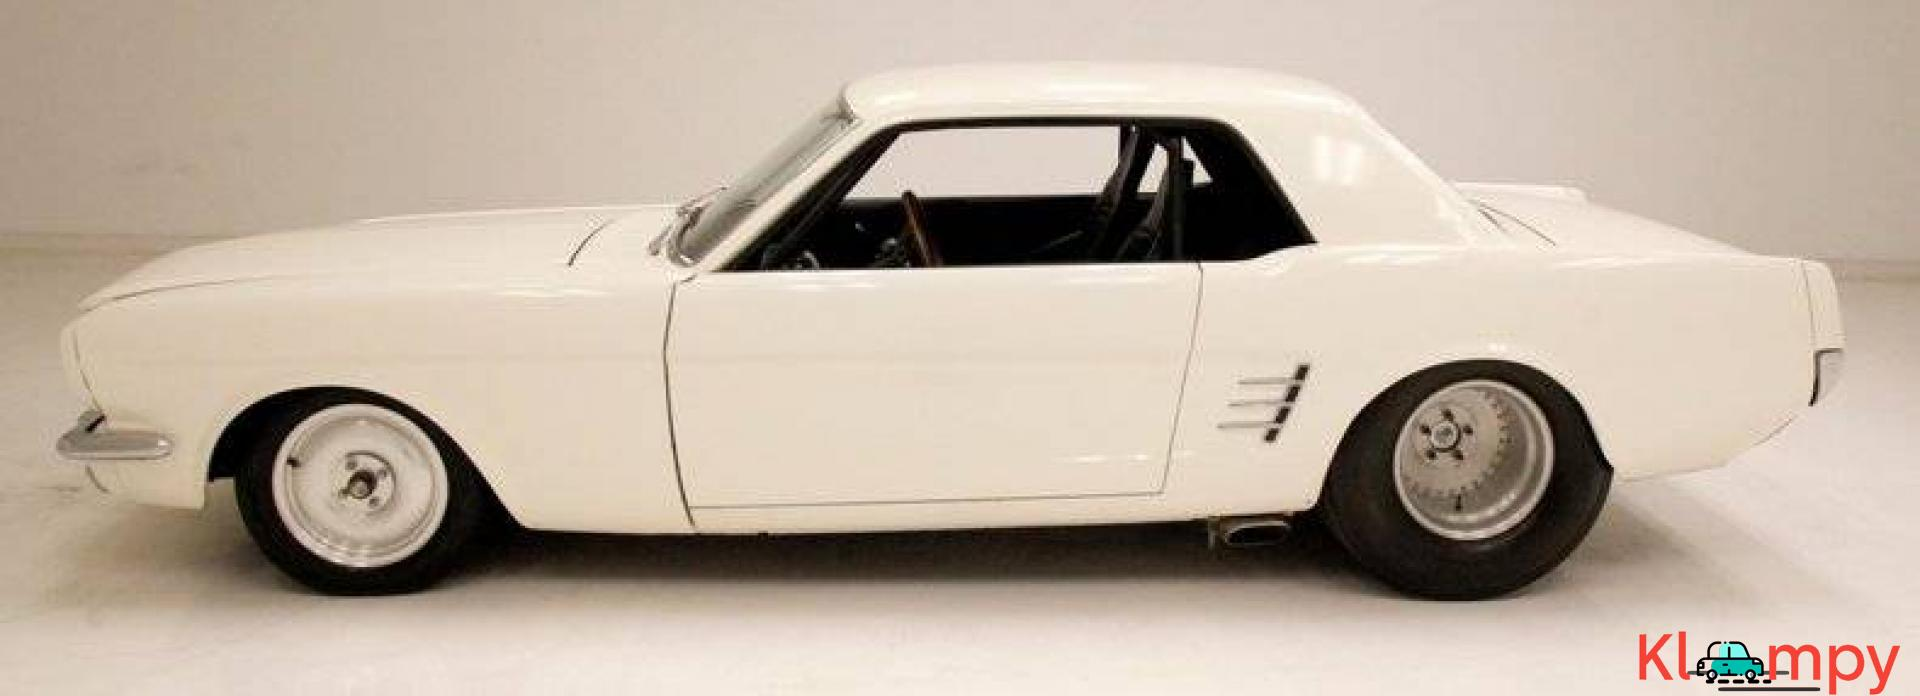 1966 Ford Mustang Coupe 302ci V8 White - 2/20